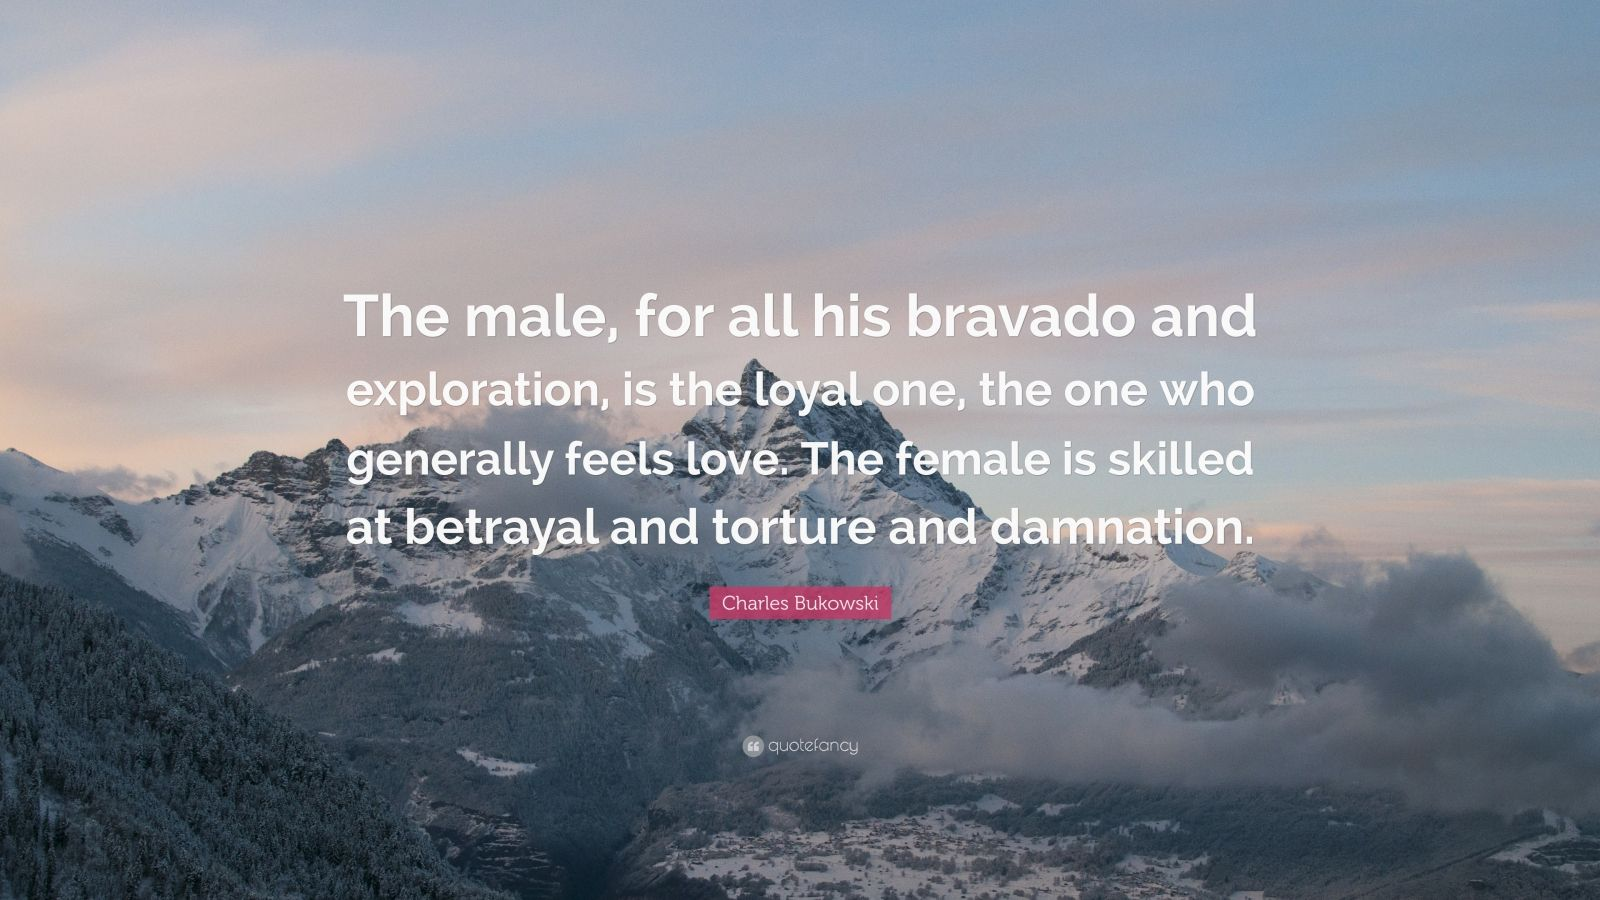 """Charles Bukowski Quote: """"The male, for all his bravado and exploration, is the loyal one, the one who generally feels love. The female is skilled at betrayal and torture and damnation."""""""